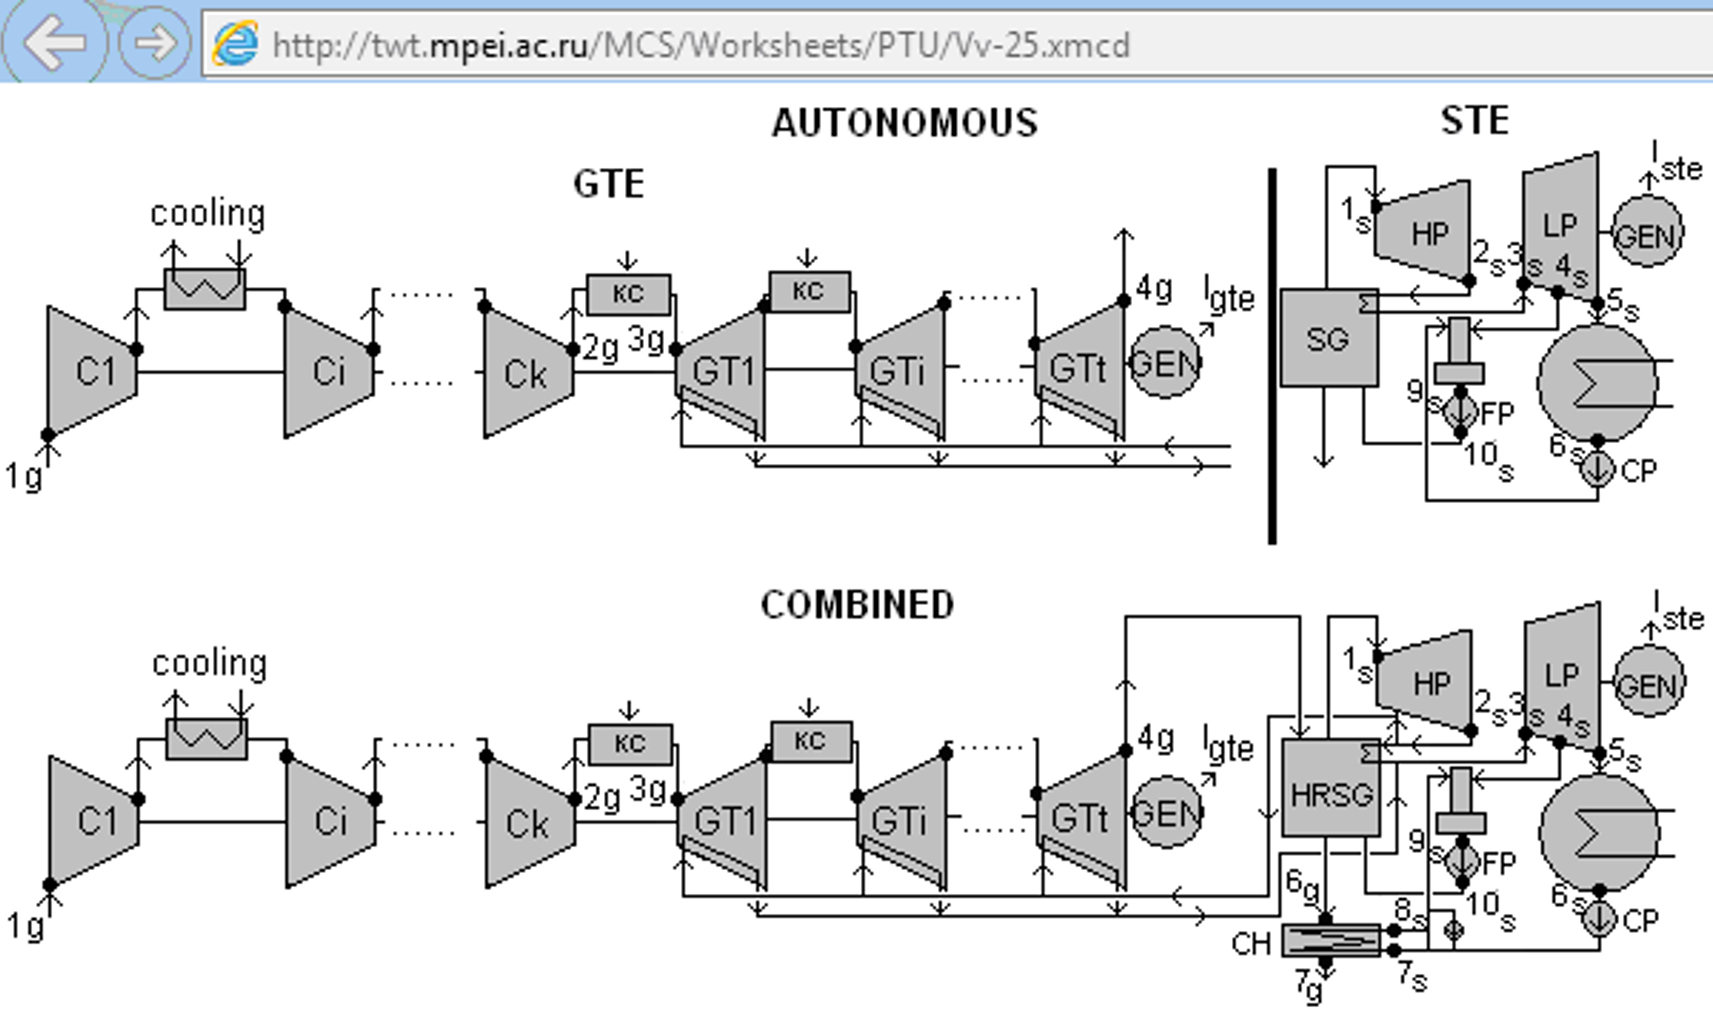 Study 14 Calculation Of Combined Binary Cycle Ptc Community Power Plant Generator Diagram Comparison Gas Turbine And Steam With Ccpp Http Twtmpeiacru Mcs Worksheets Ptu Vv 25xmcd